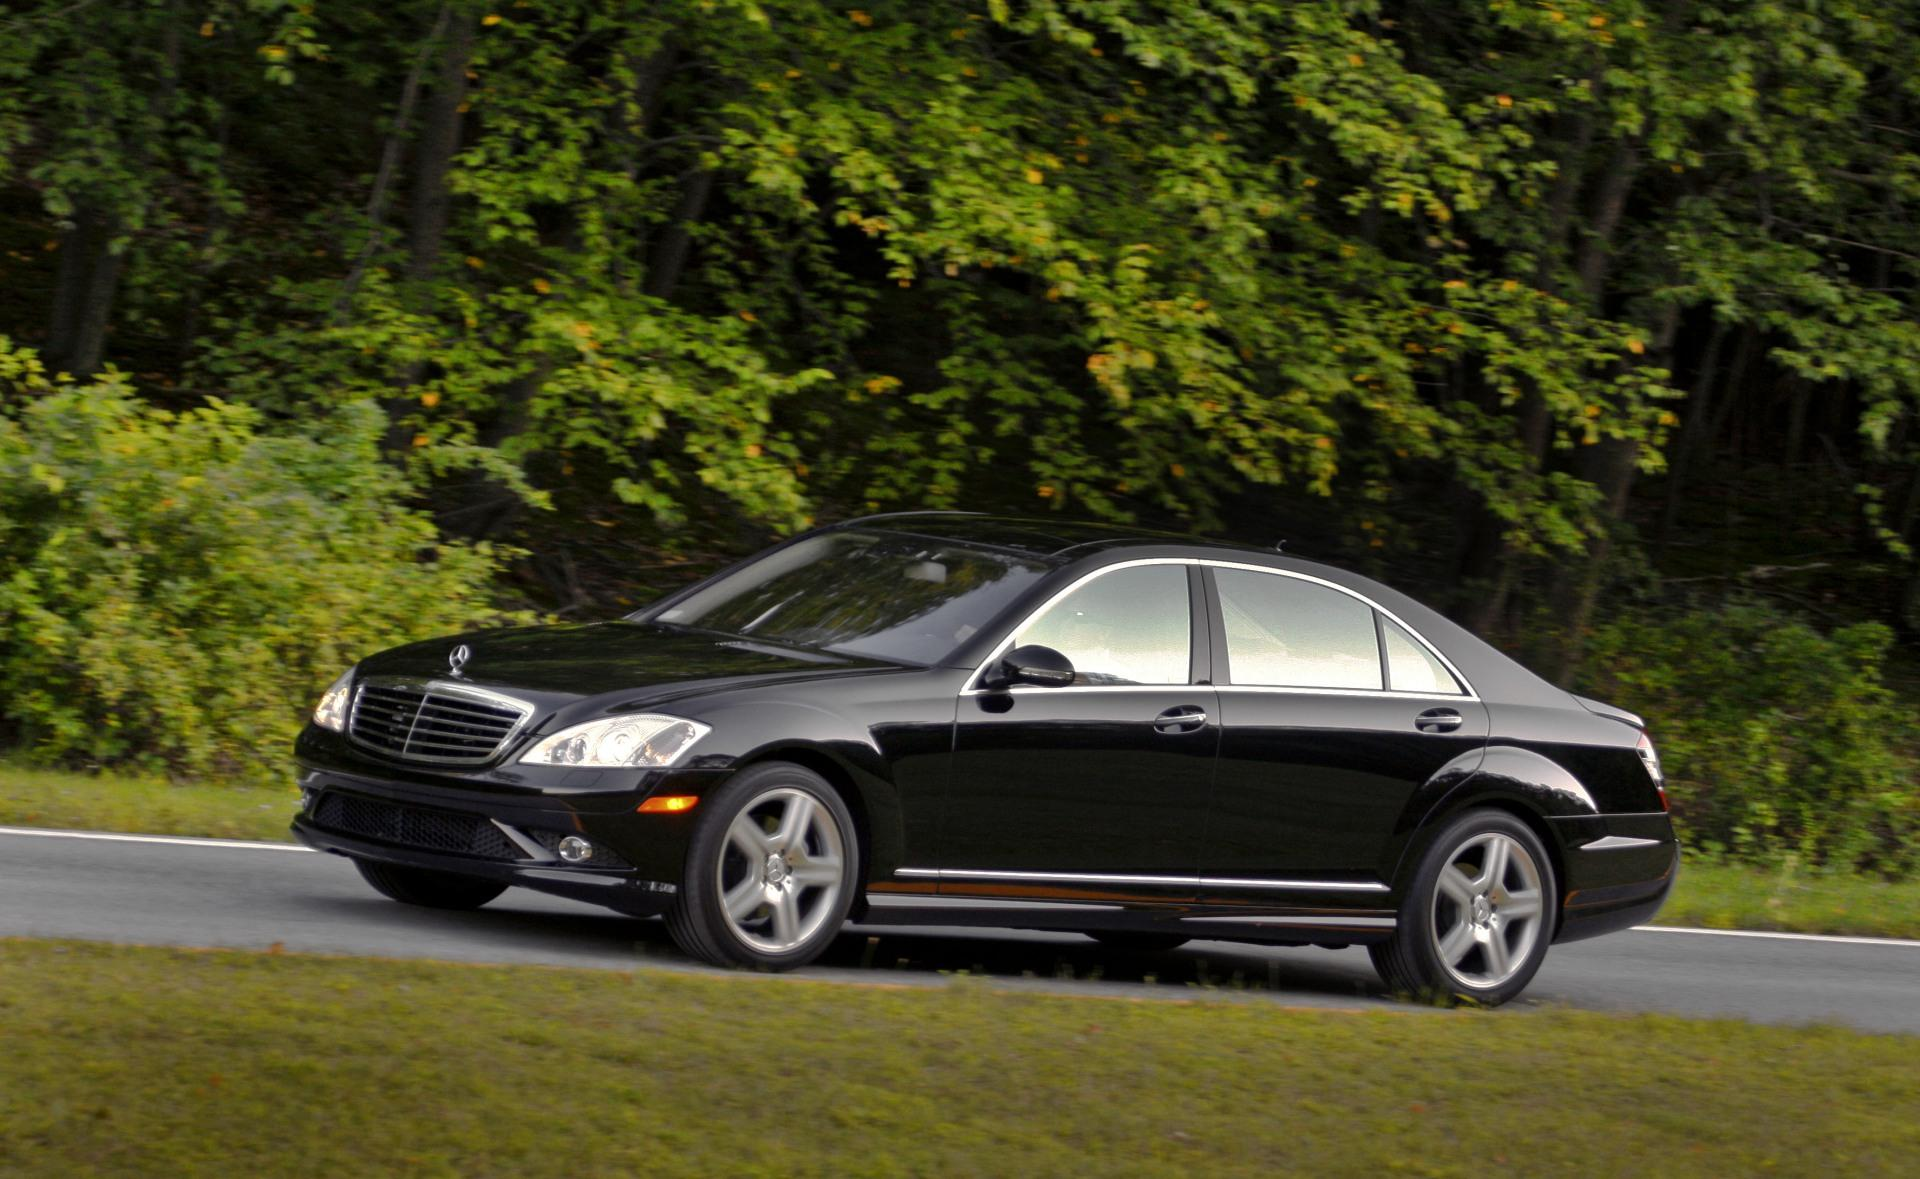 2009 mercedes benz s class news and information for 2009 mercedes benz s550 price